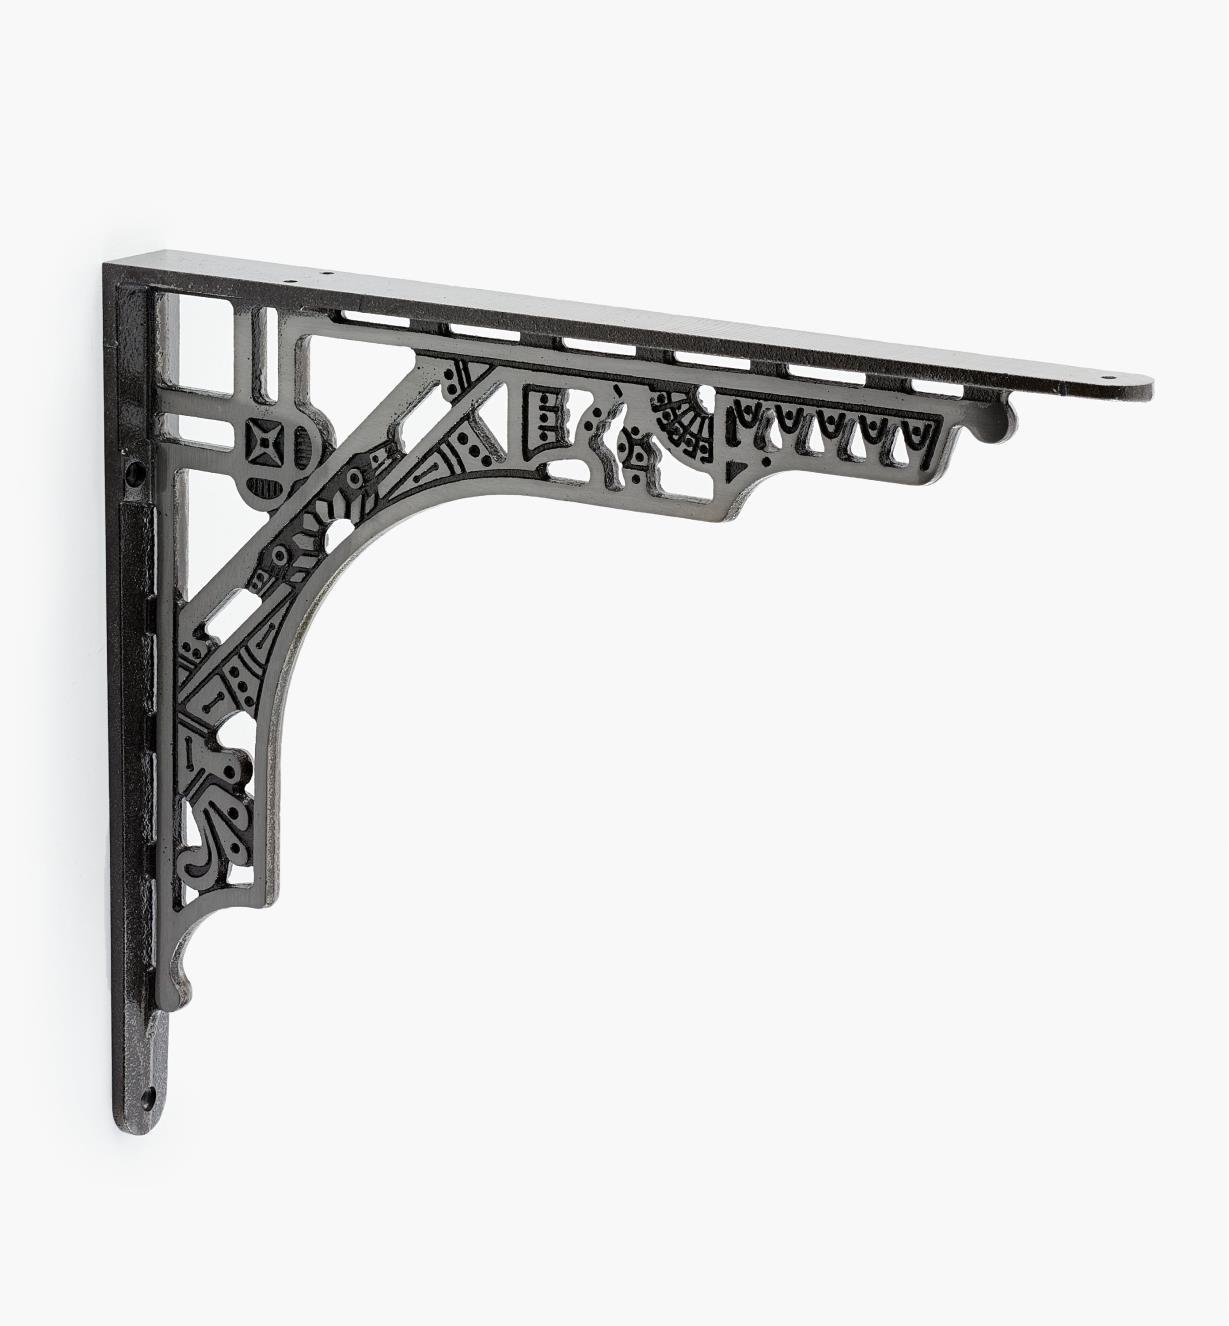 17K2401 - Large Cast Steel Bracket